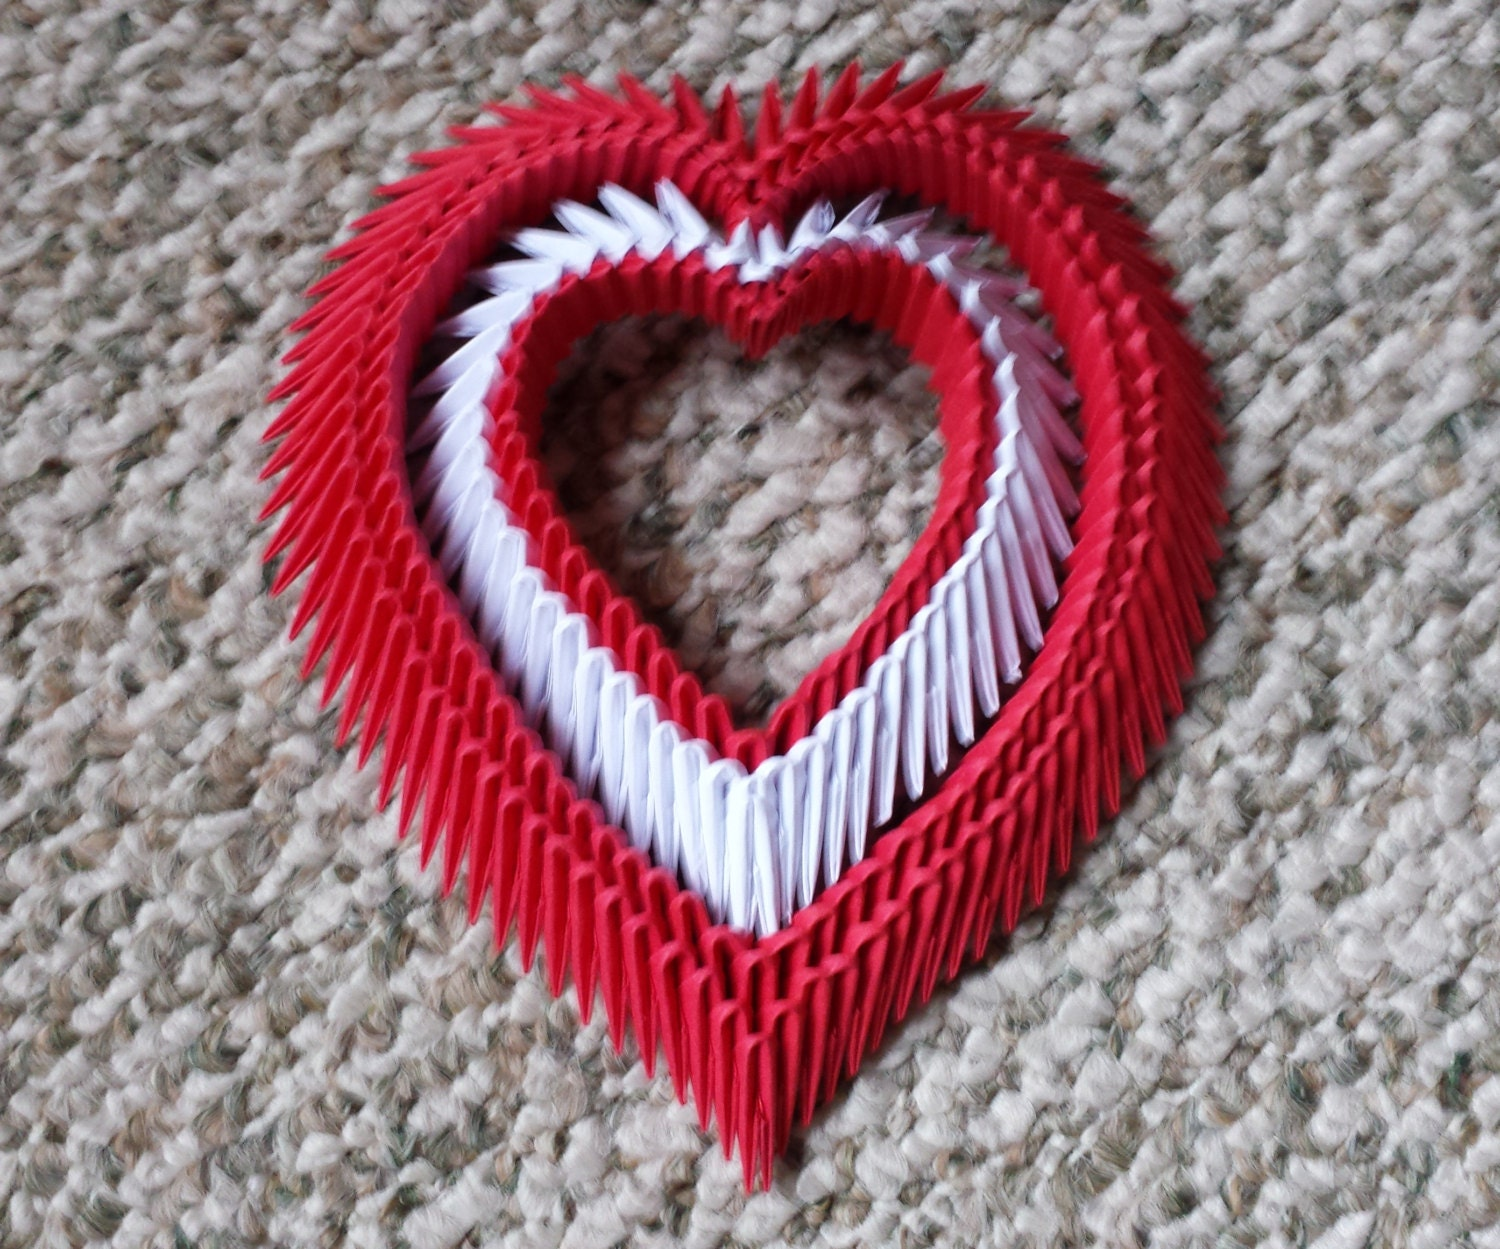 3d Origami heart - photo#41